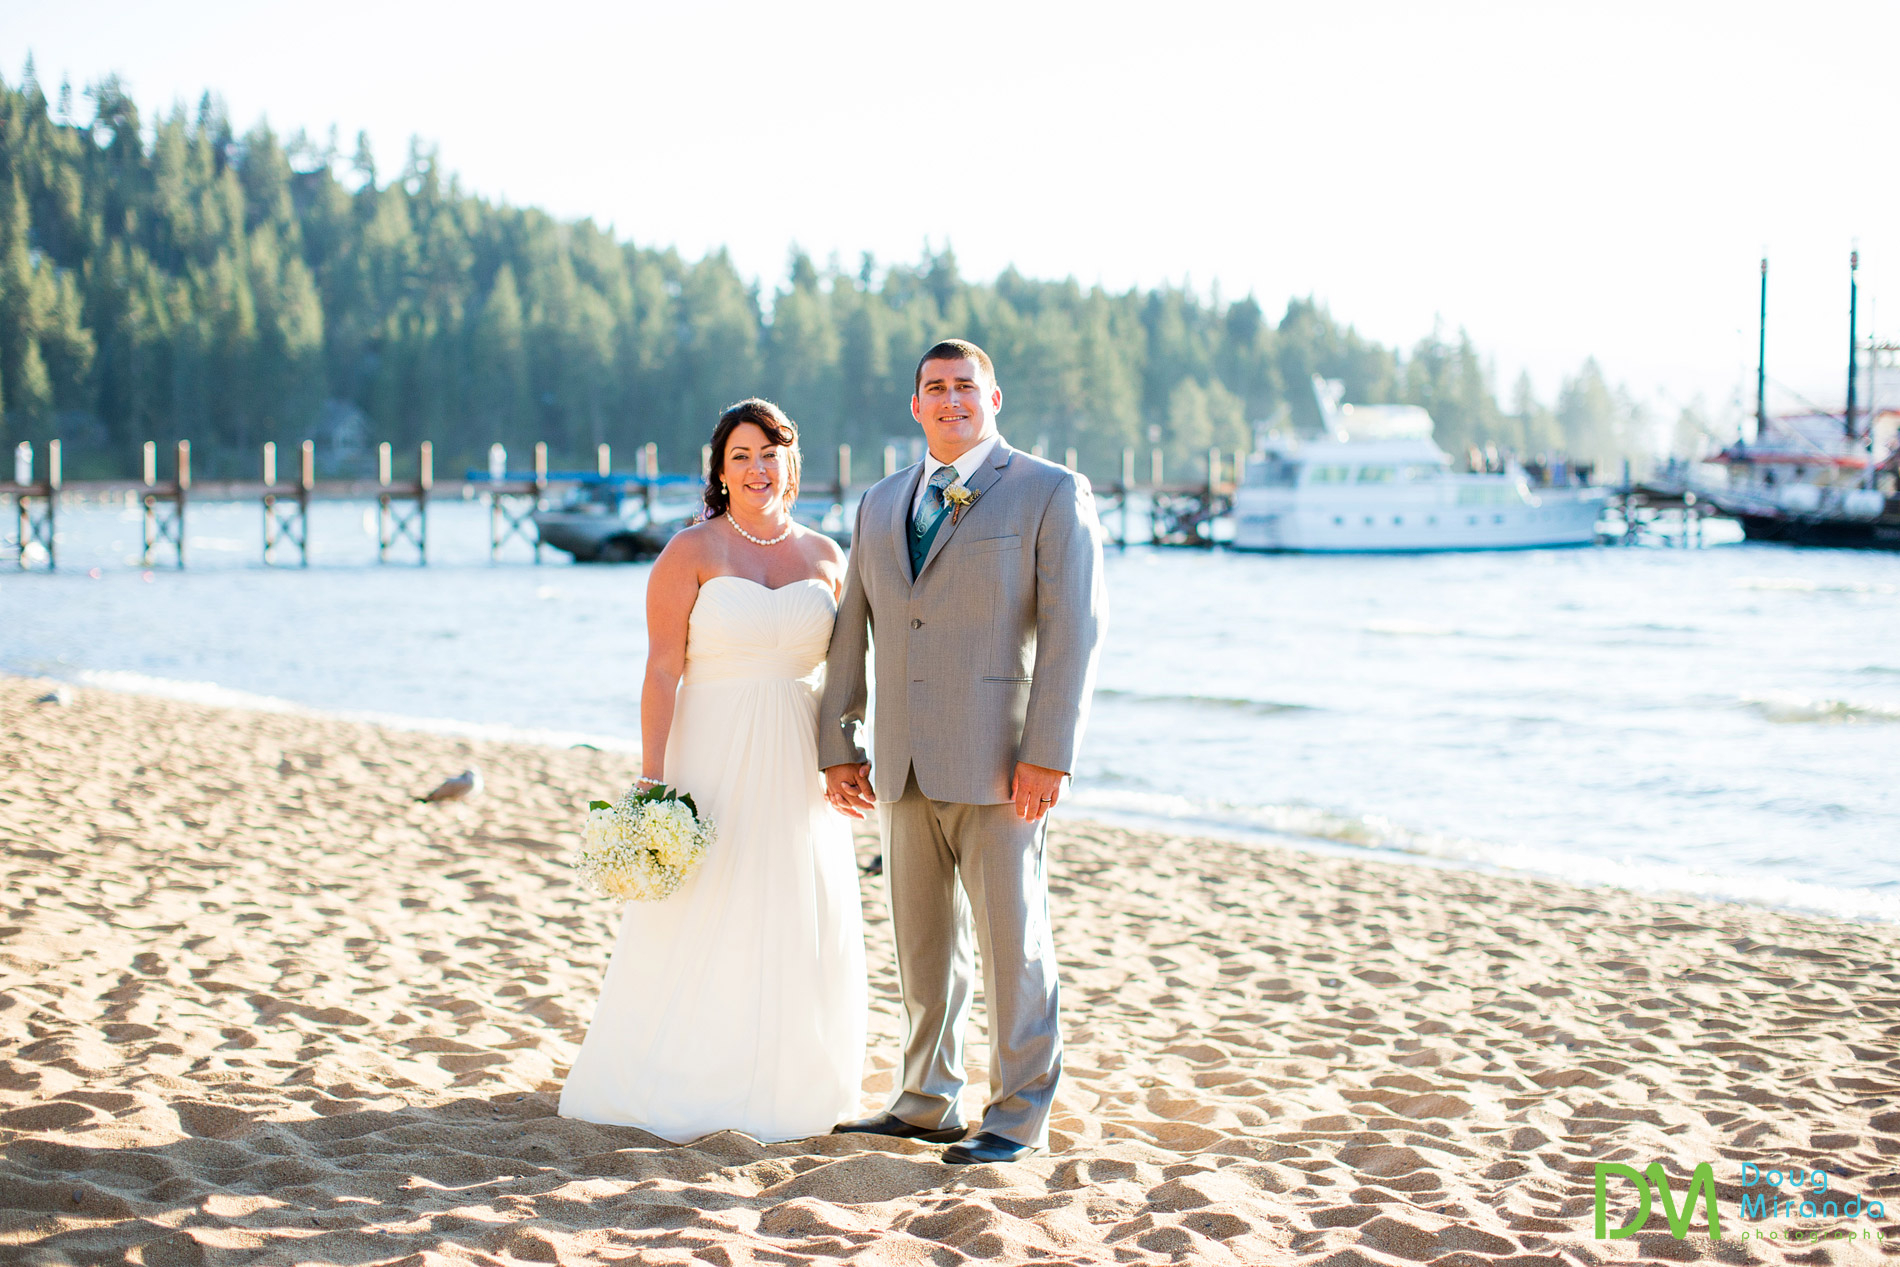 zephyr cove wedding photography